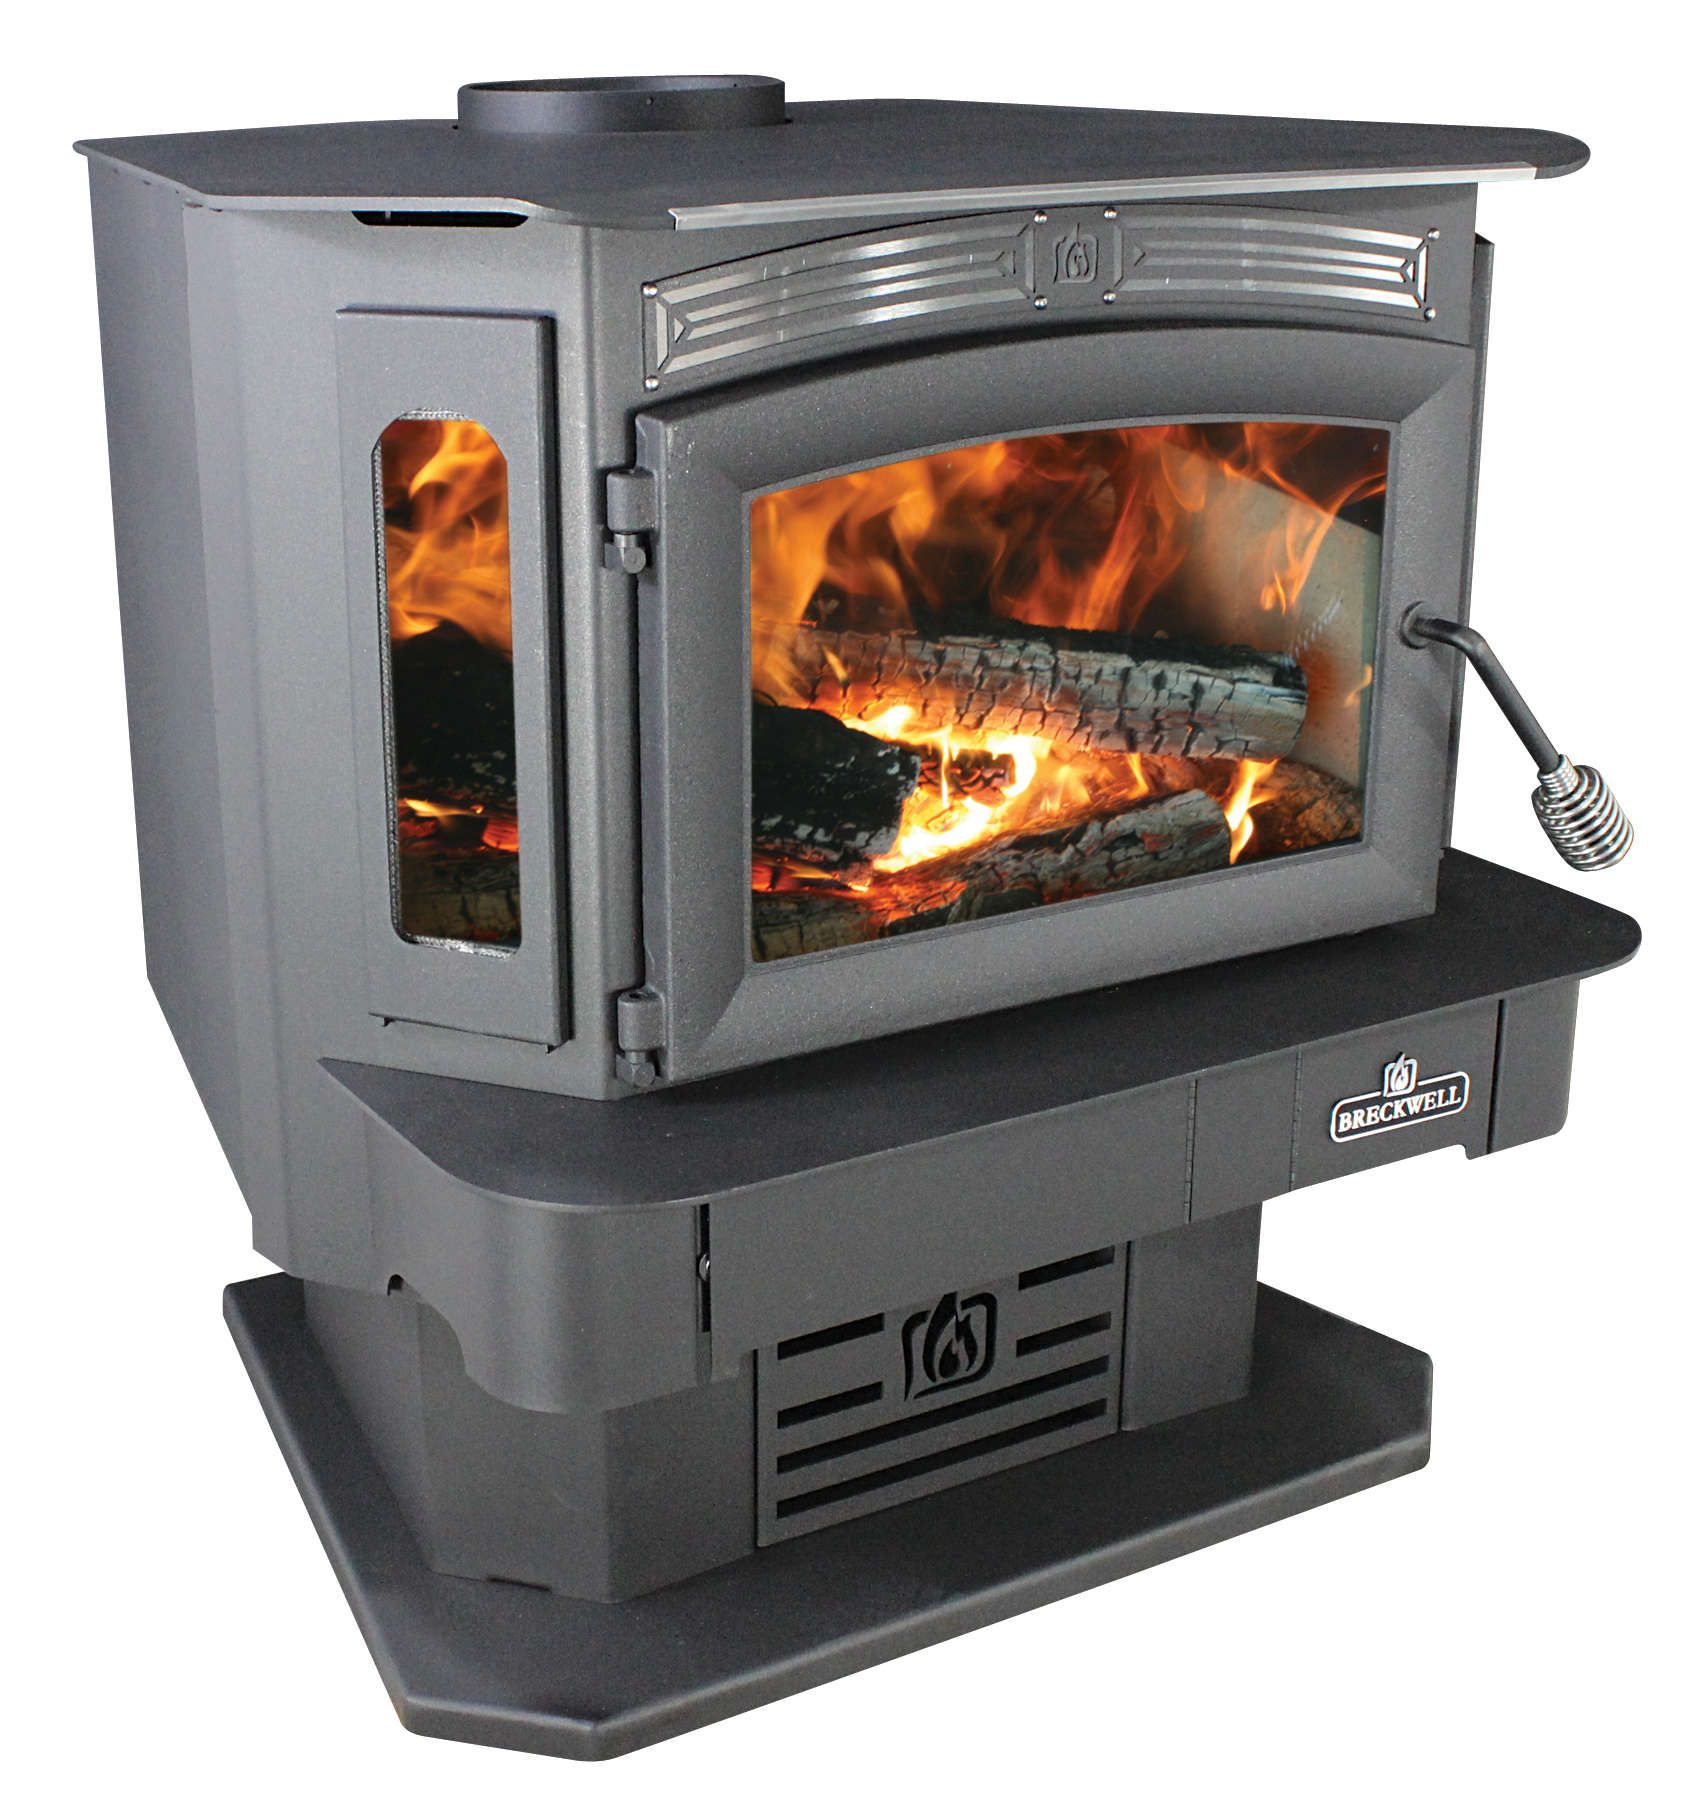 SW940P angle left wood burning stove repair & replacement parts online buck stove clayton wood furnace wiring diagram at fashall.co